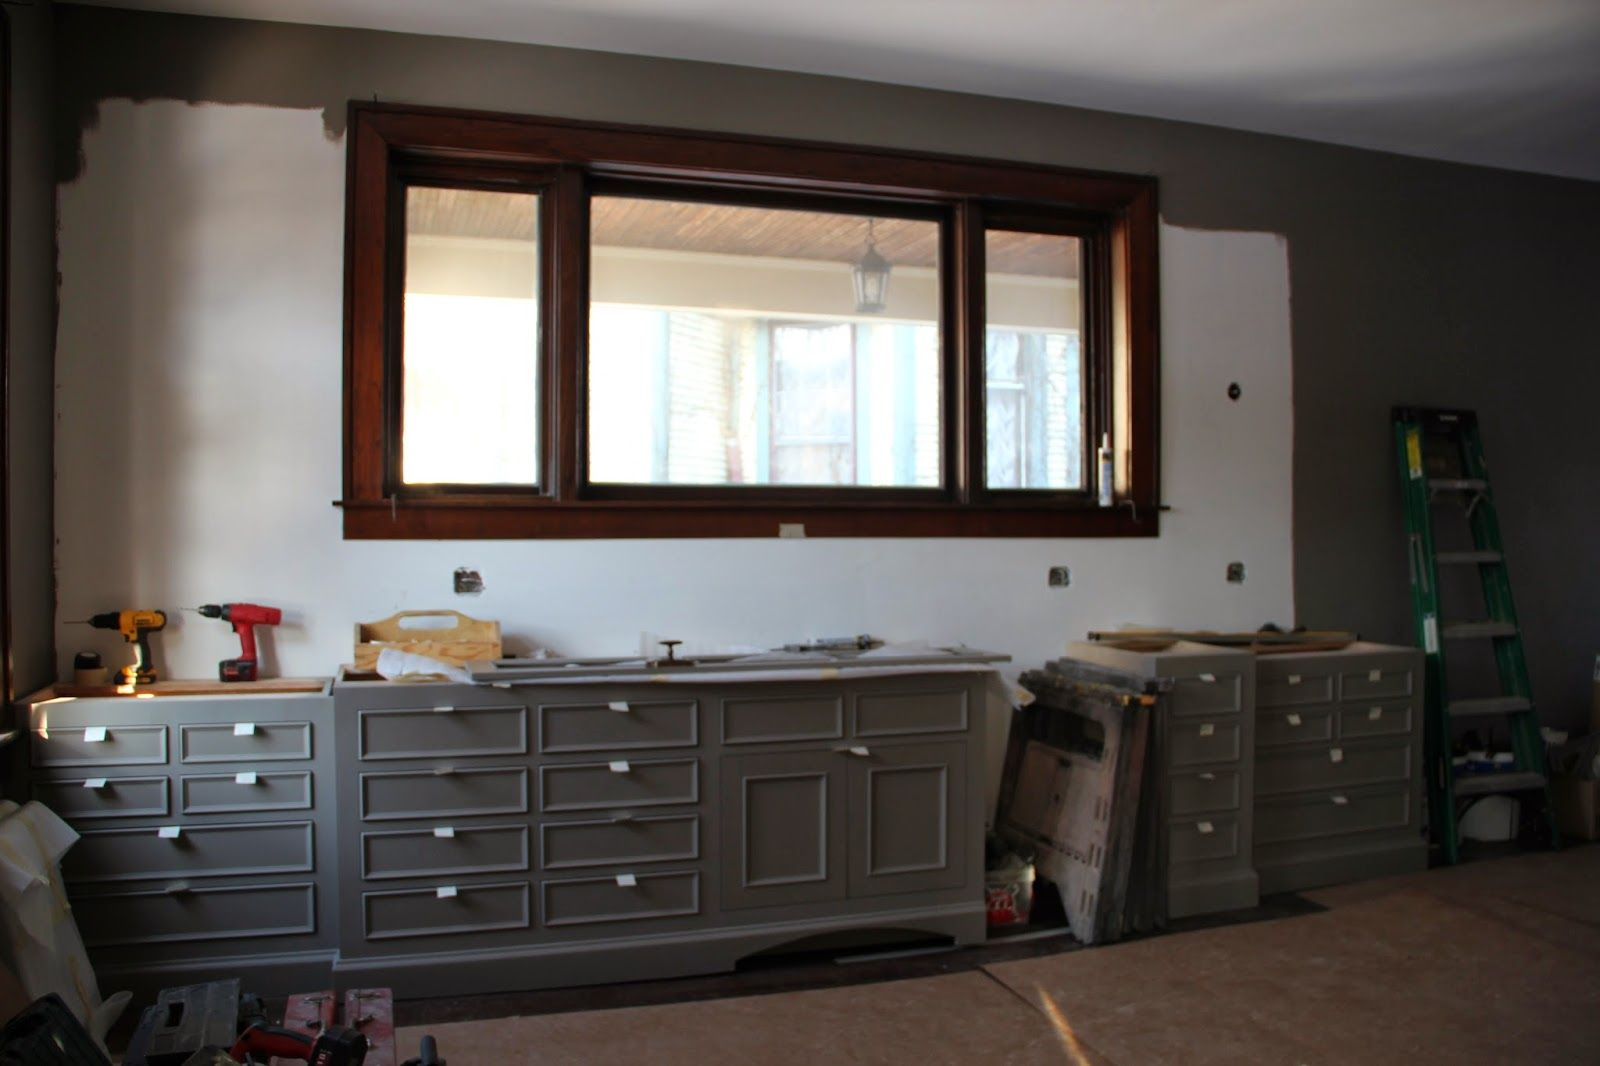 Grey Cabinets And Cremone Bolts On Uppers Grey Cabinets House Bathroom Vanity